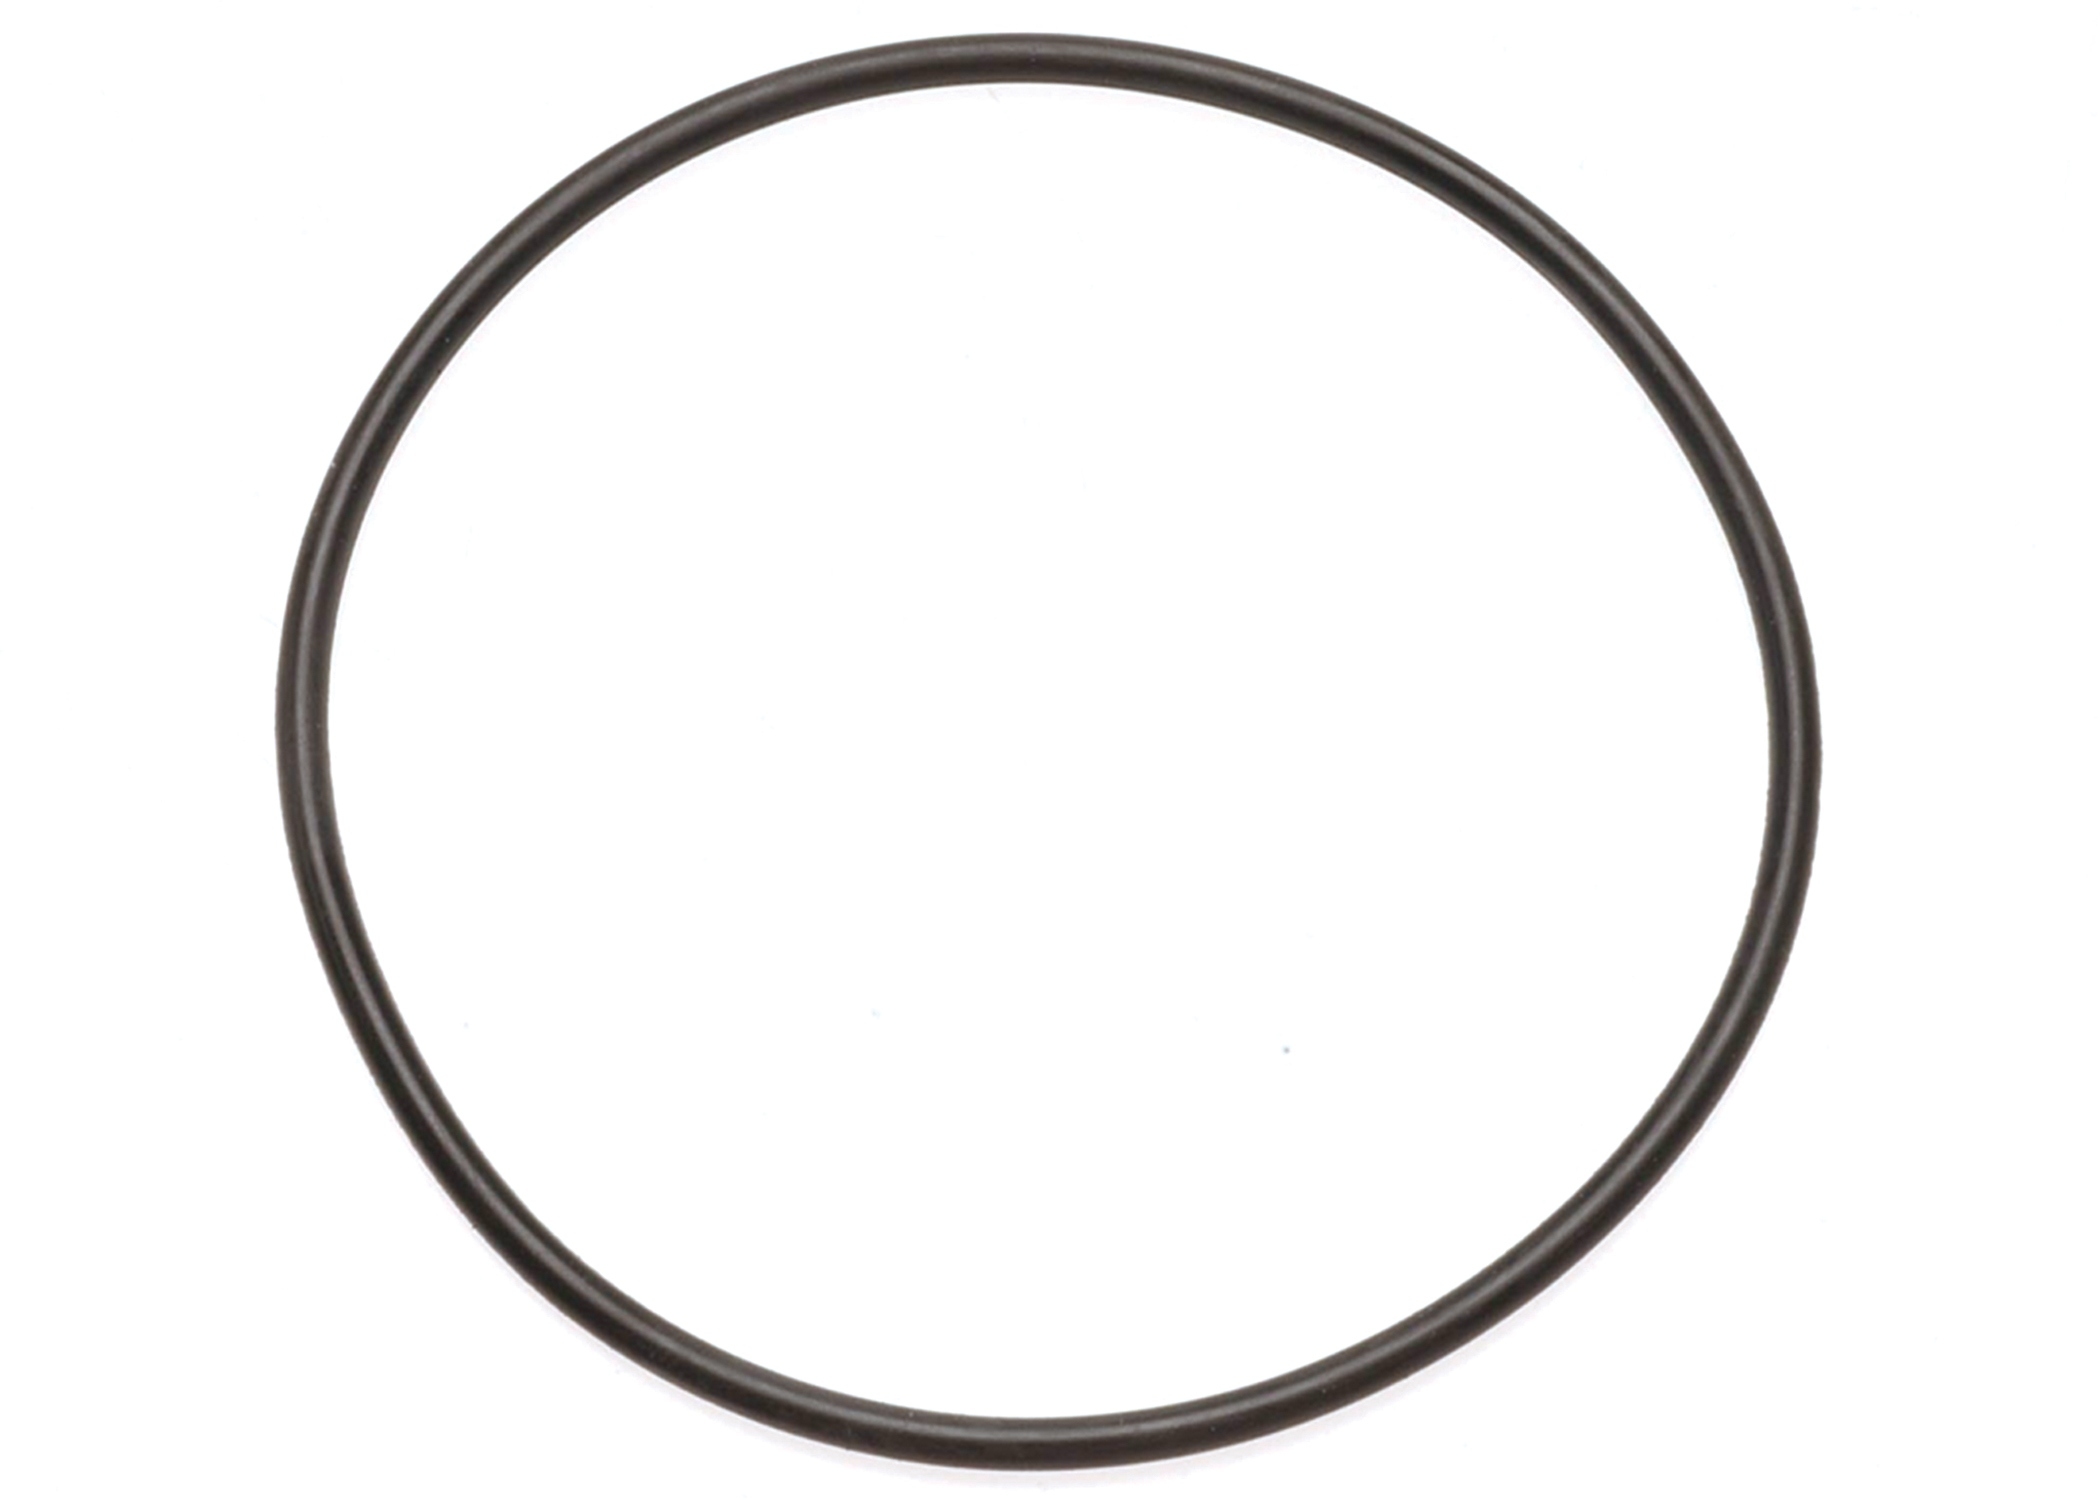 ACDELCO OE SERVICE - Man 2-1 Band Servo Piston Cylinder Seal (O-Ring) - DCB 8651541